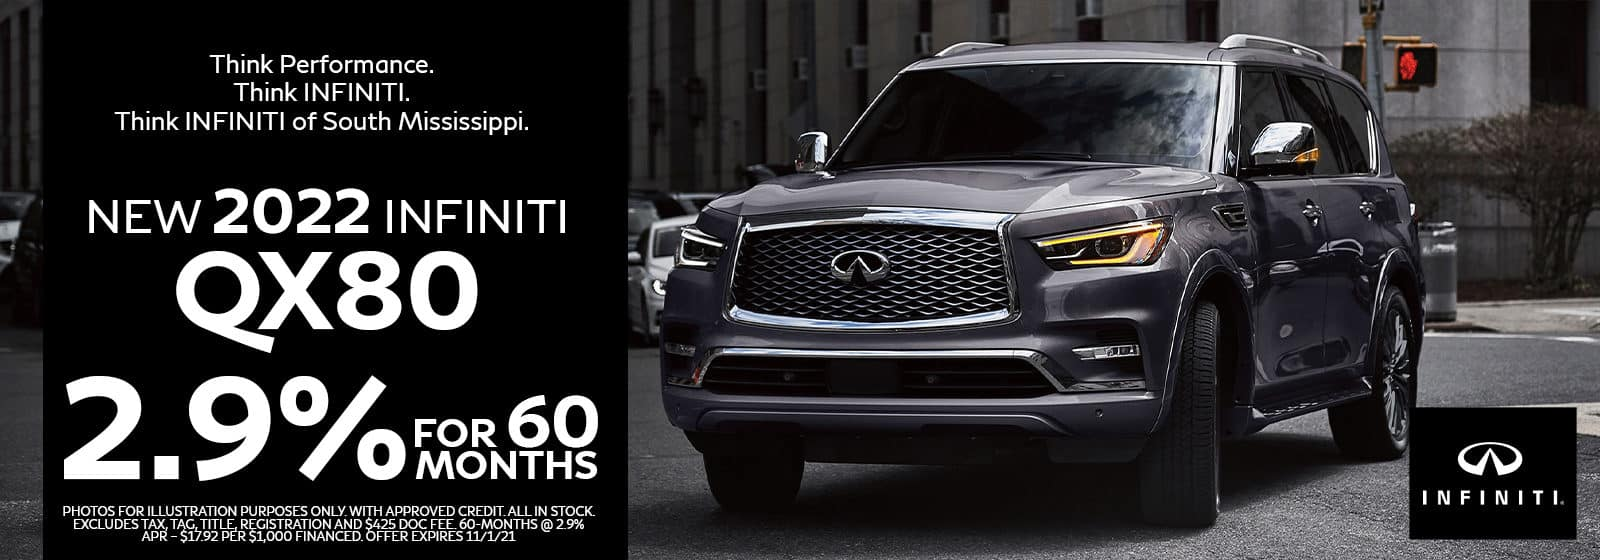 INFINITI of South Mississippi